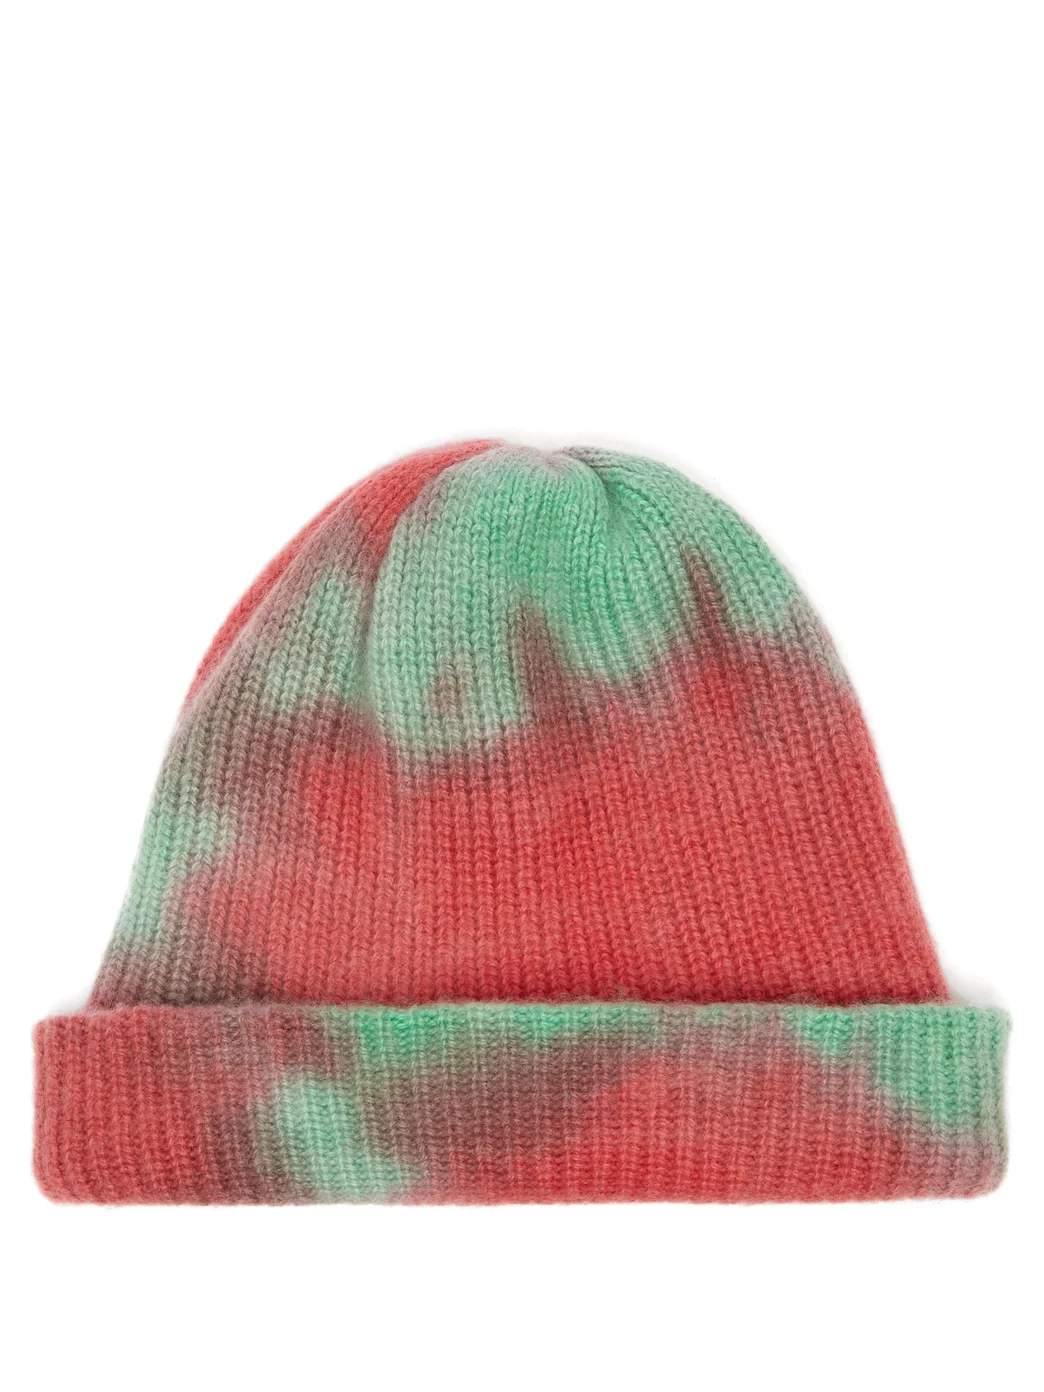 565c1a4c Fishermen Beanie Winter Hats, Cold Weather Accessories